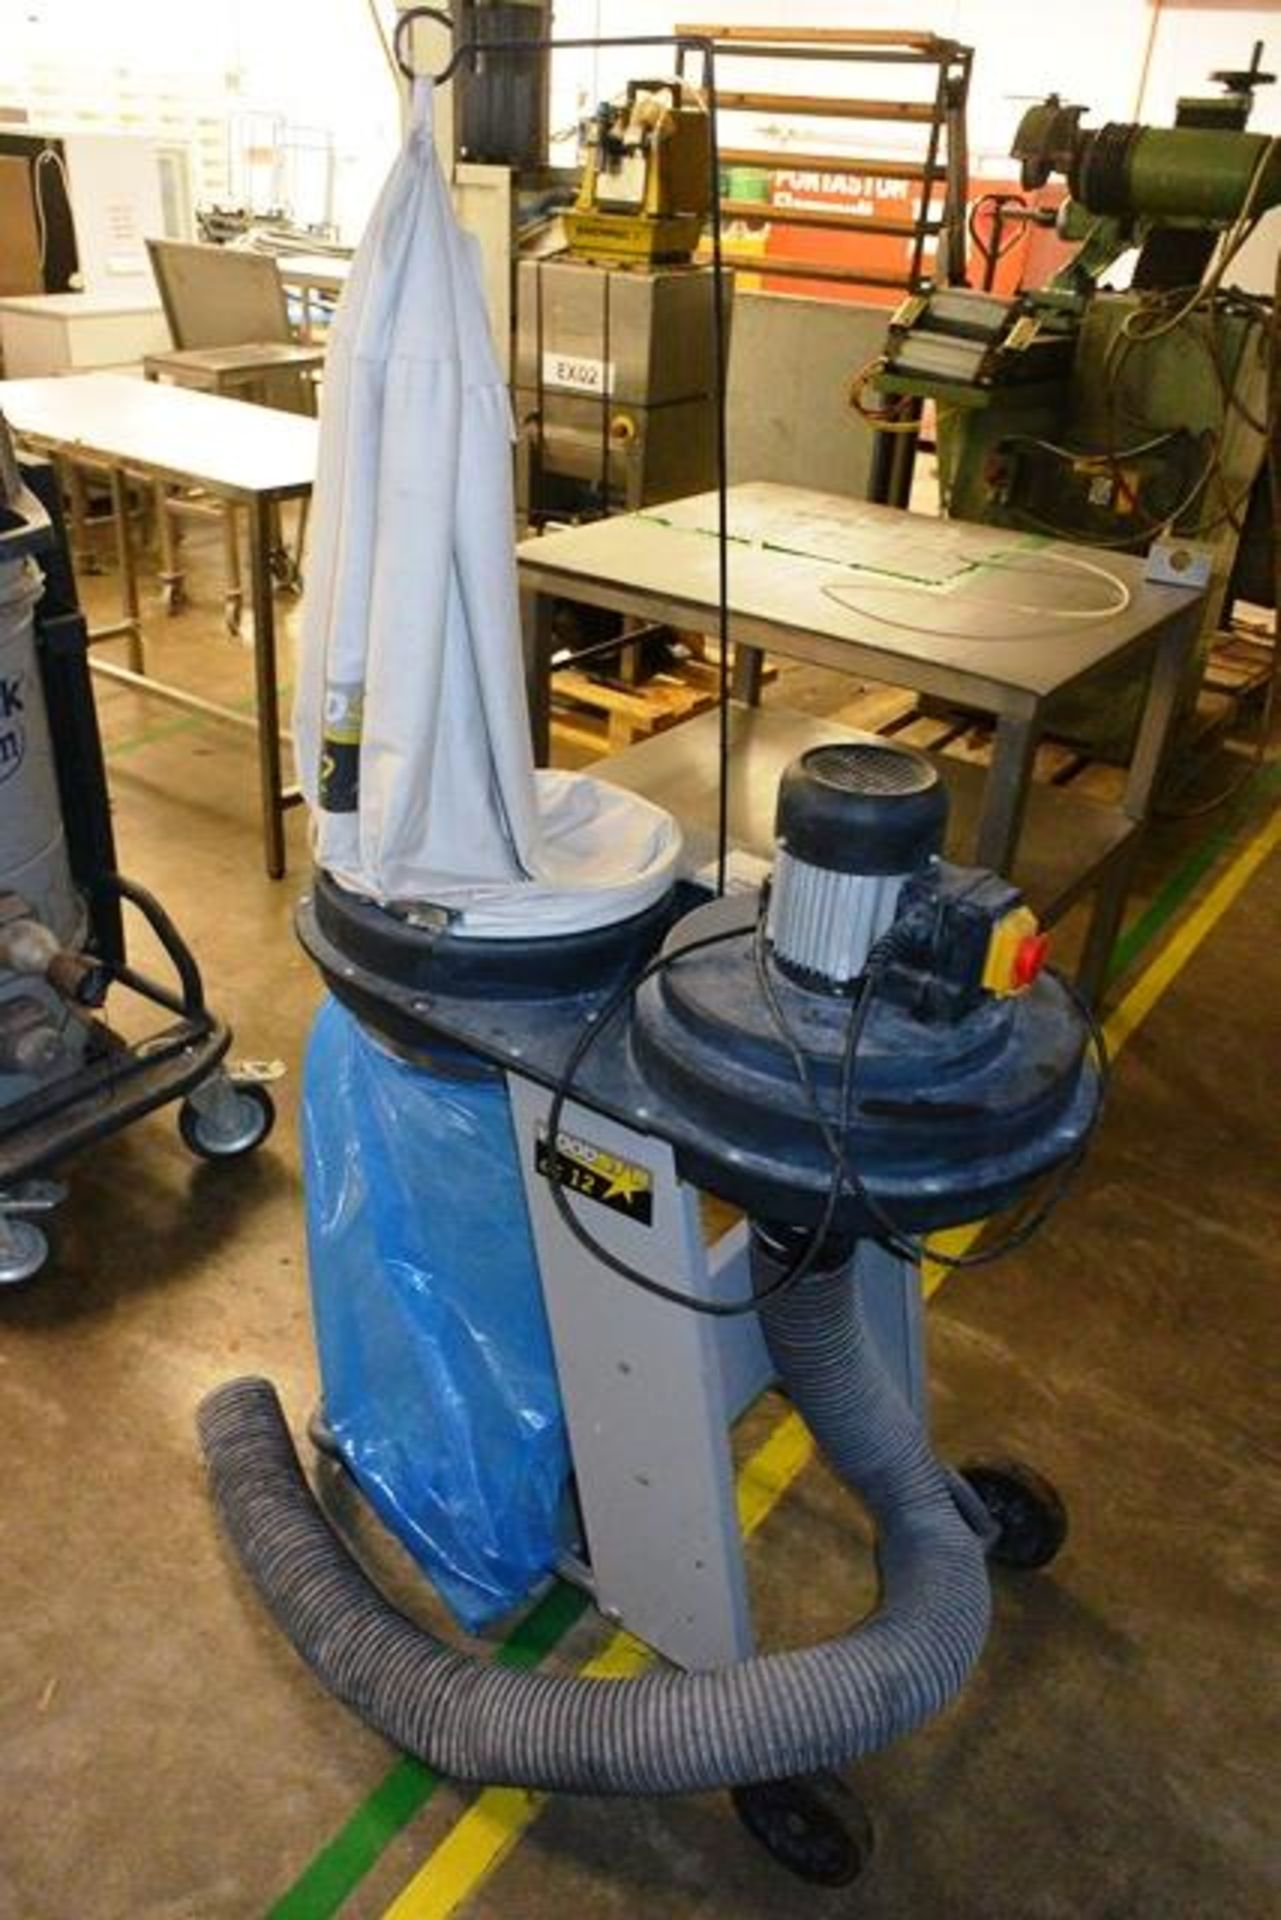 Wood Star mobile single bag dust extraction unit, serial no. 1112, 240v